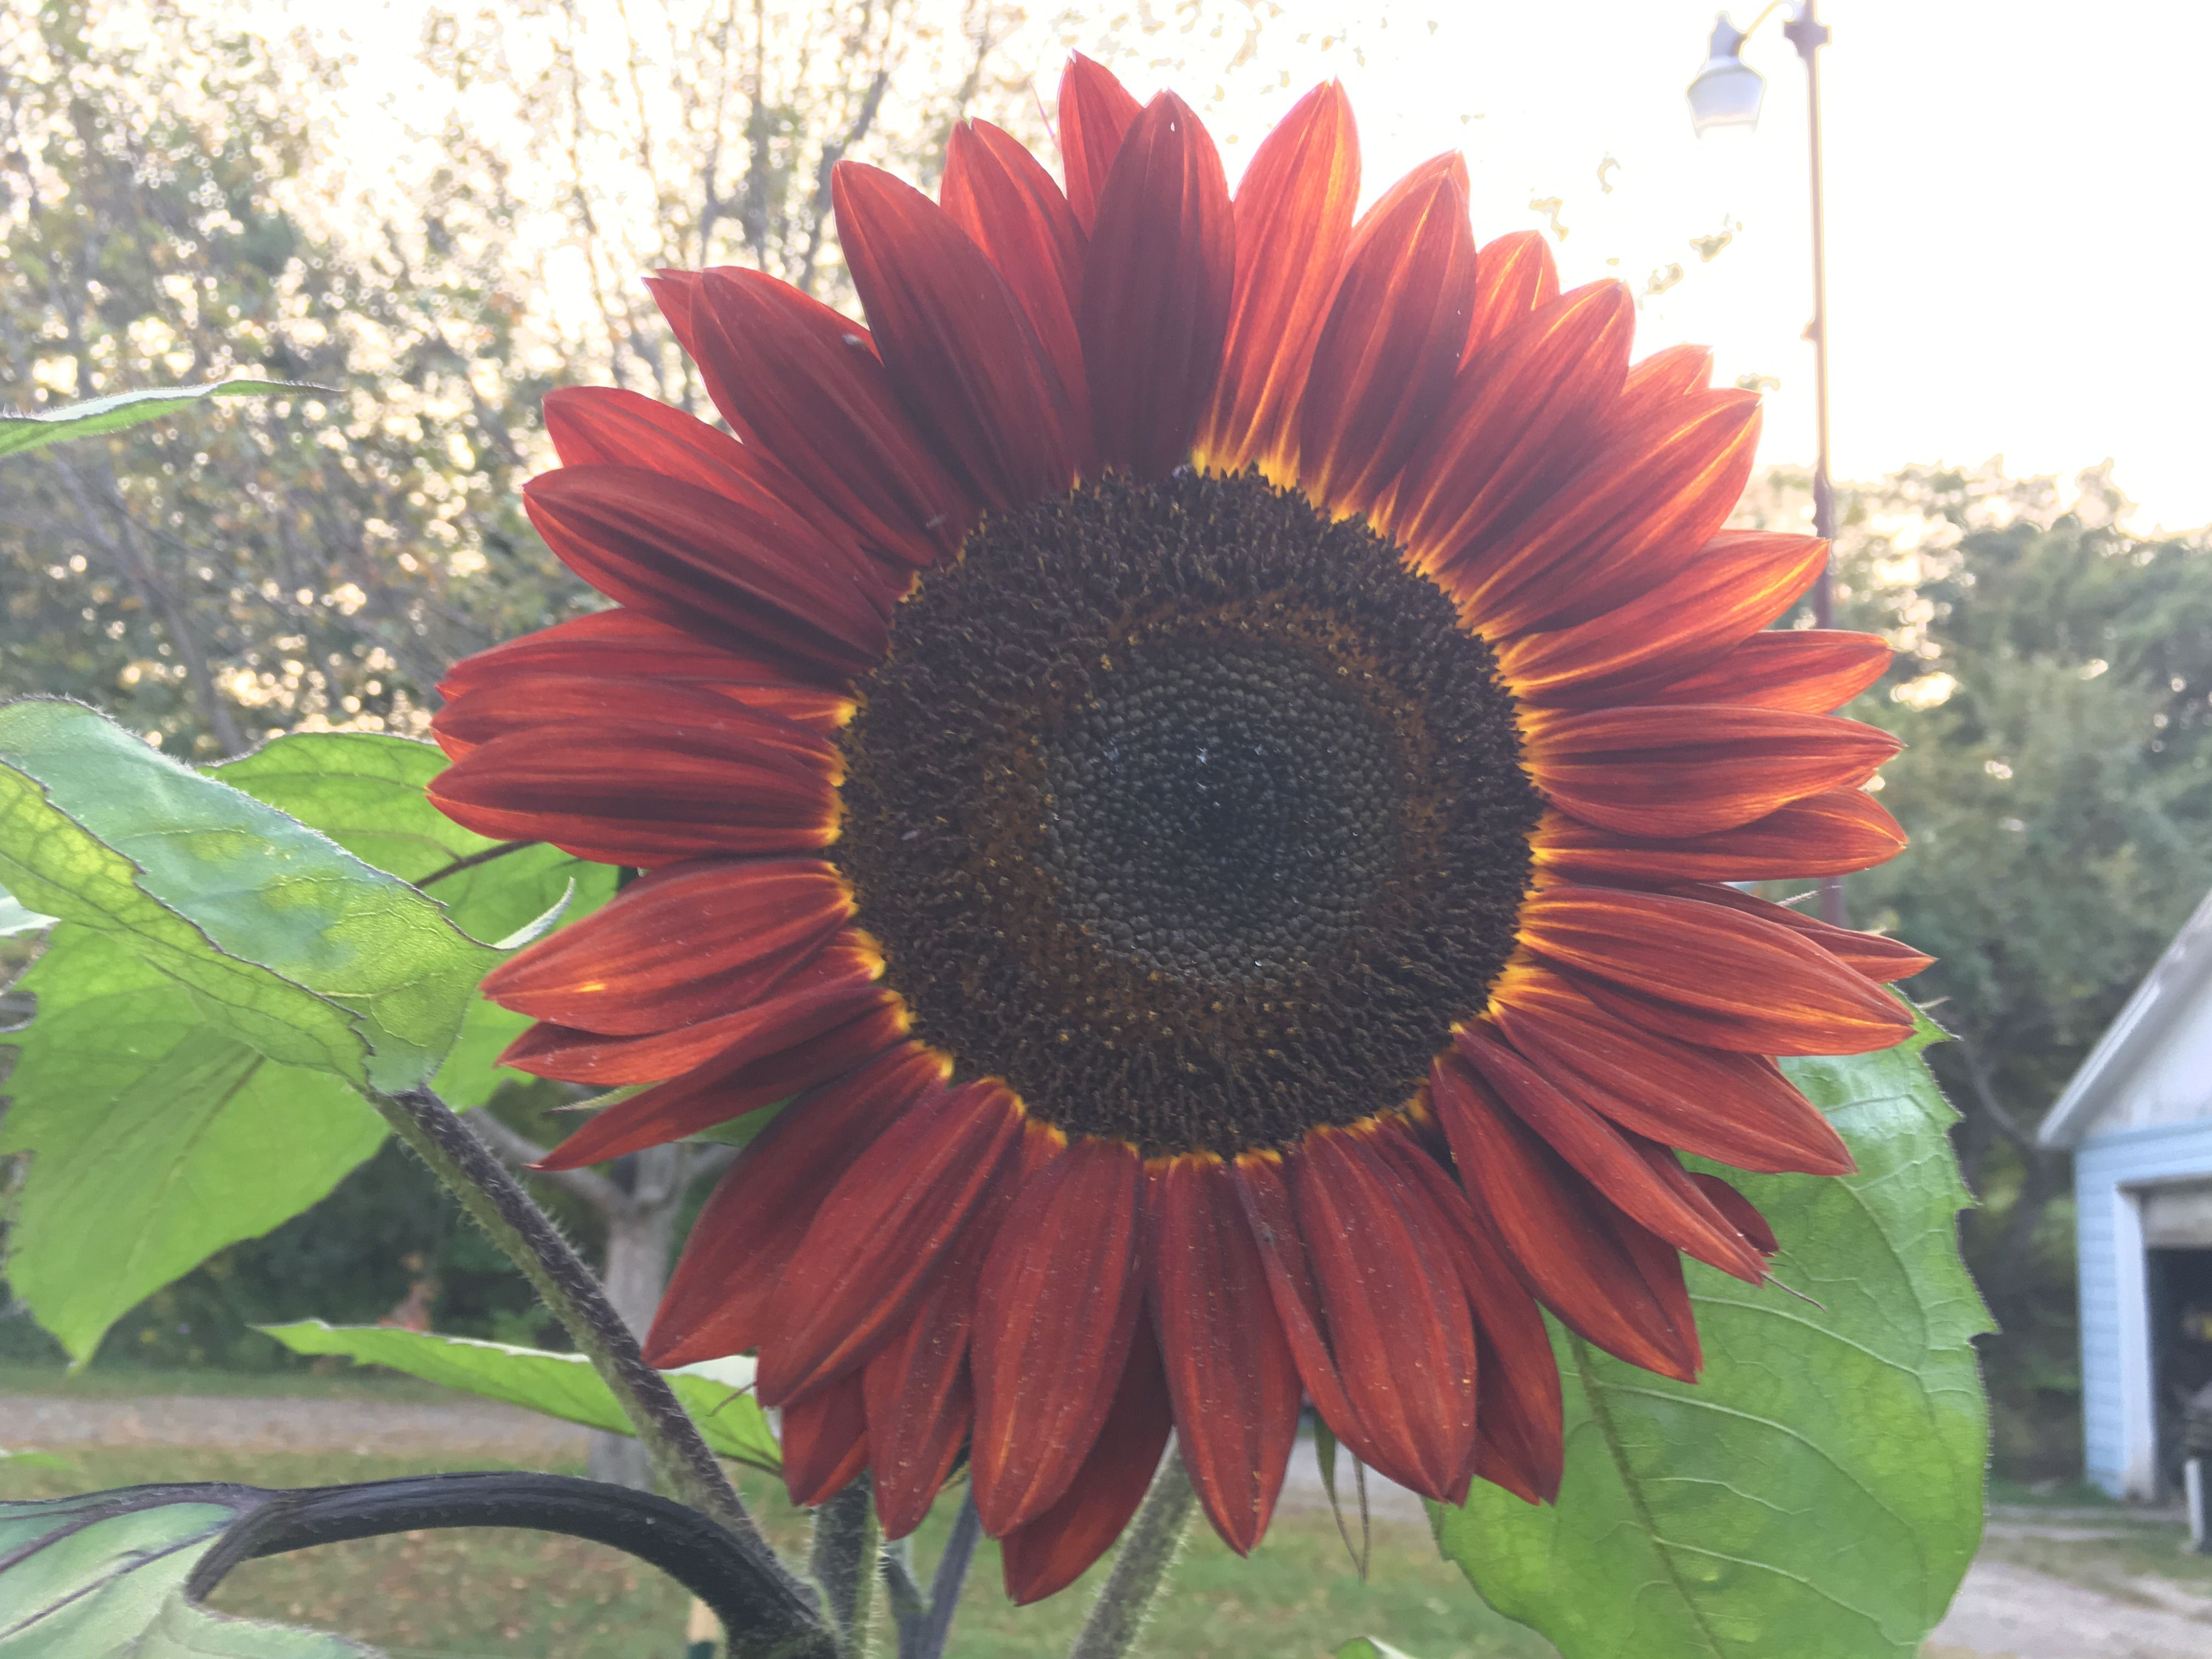 Pin By Tina Stanley On Sunflowers Plants Sunflower Pandan